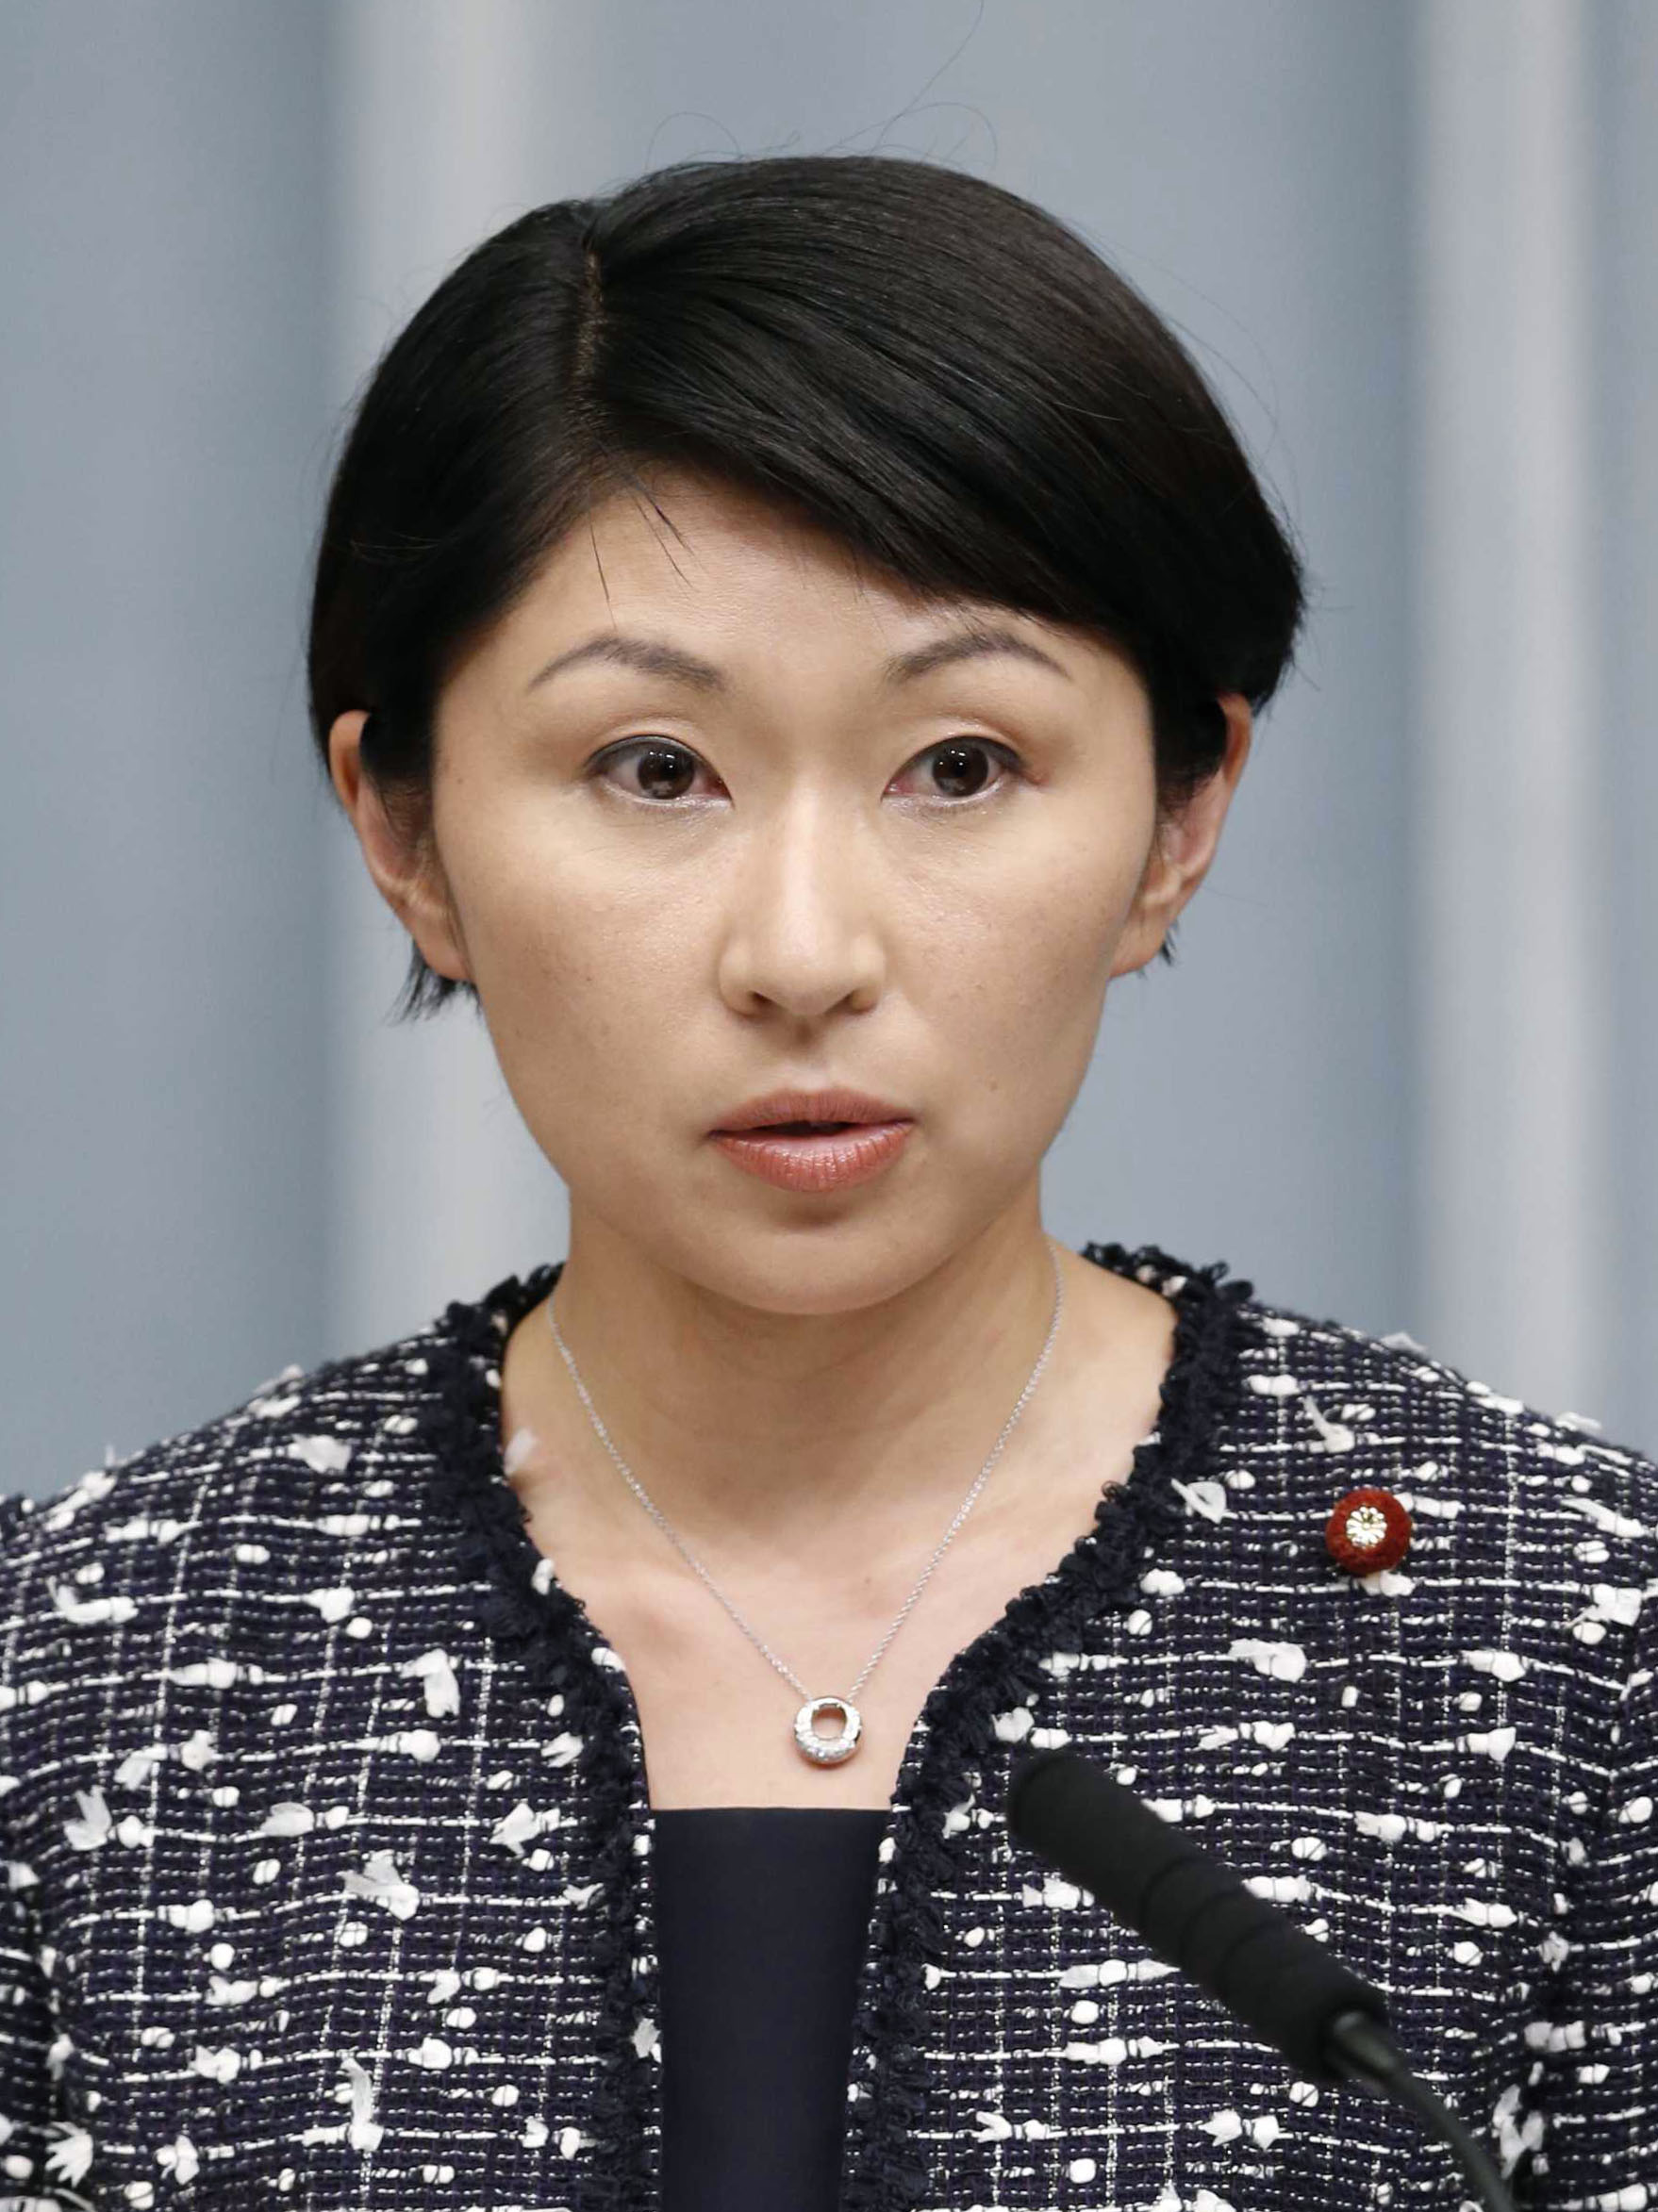 New Economy, Trade and Industry Minister Minister Yoichi